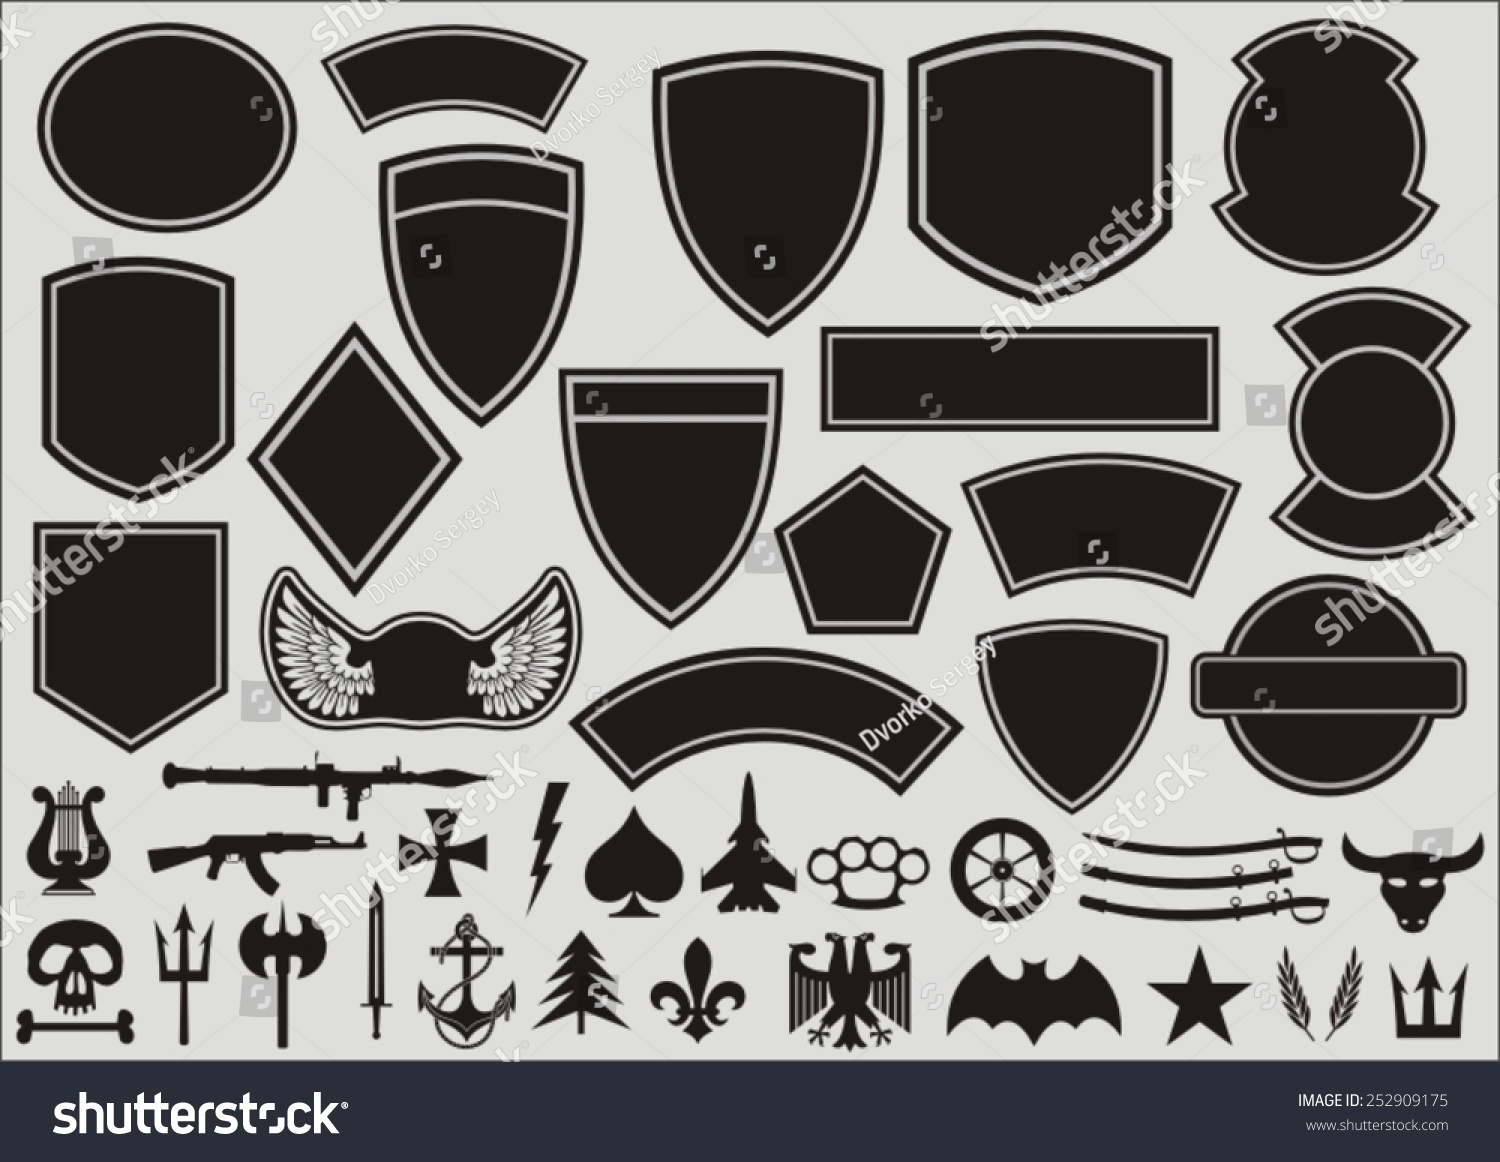 military patch template set designing military patches stock vector 252909175